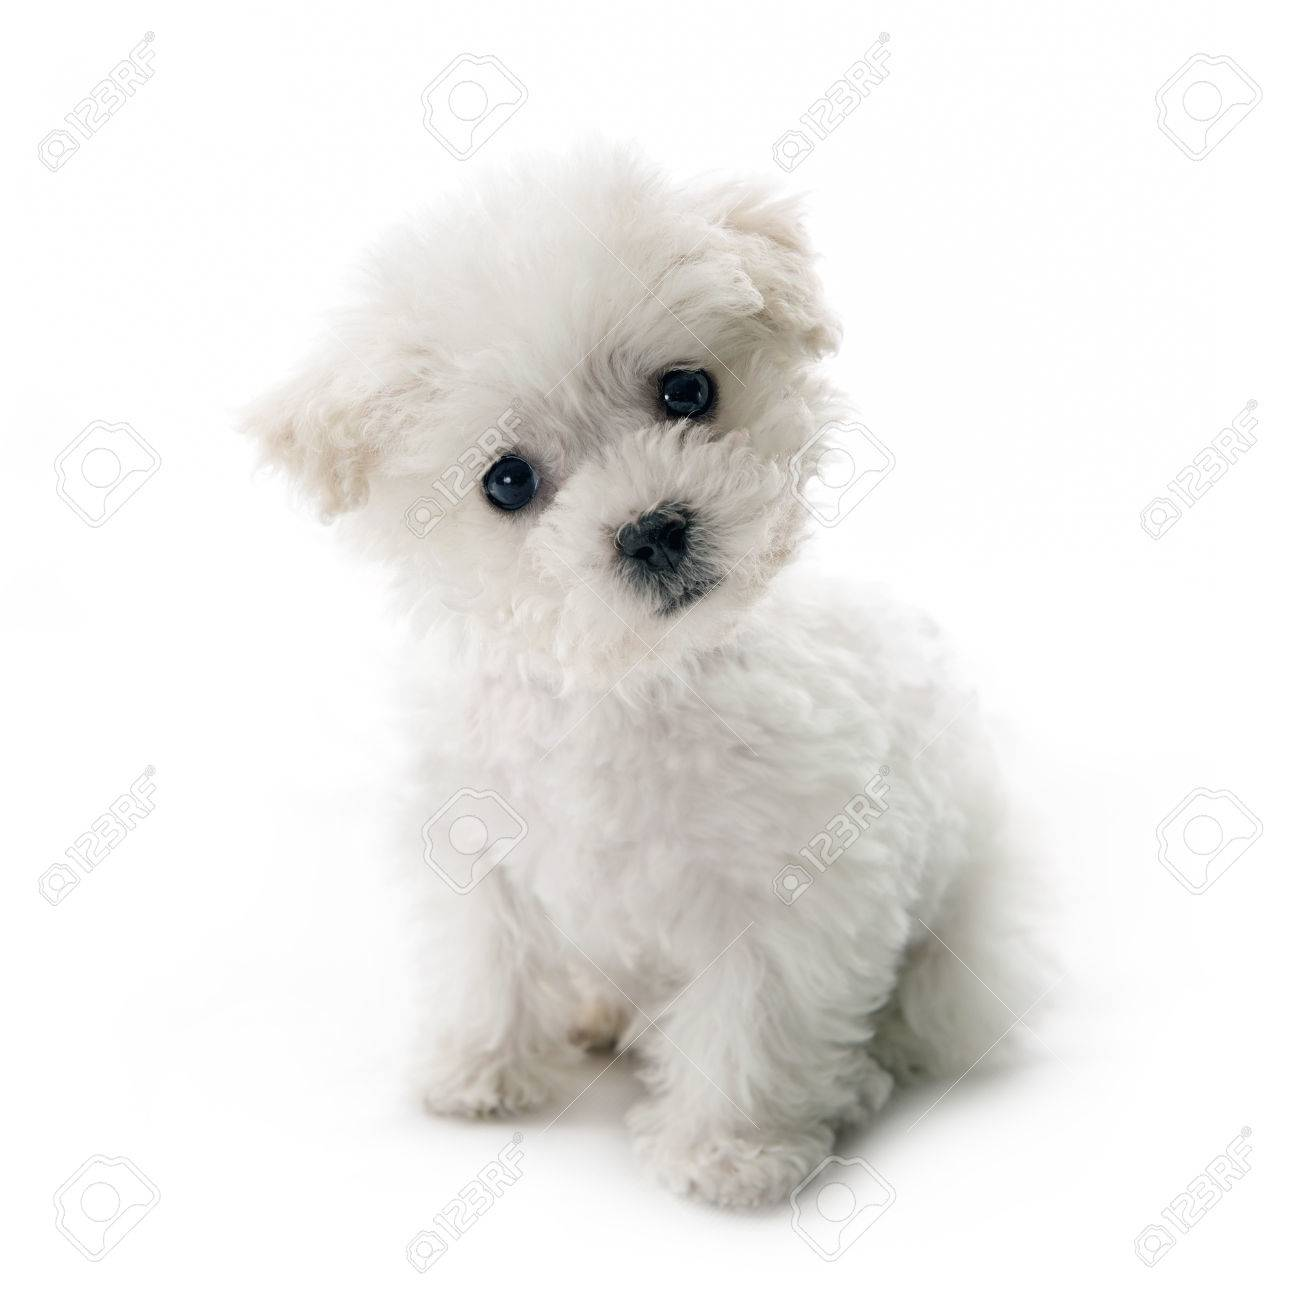 cute small bichon frise puppy at 9 weeks old sitting on white